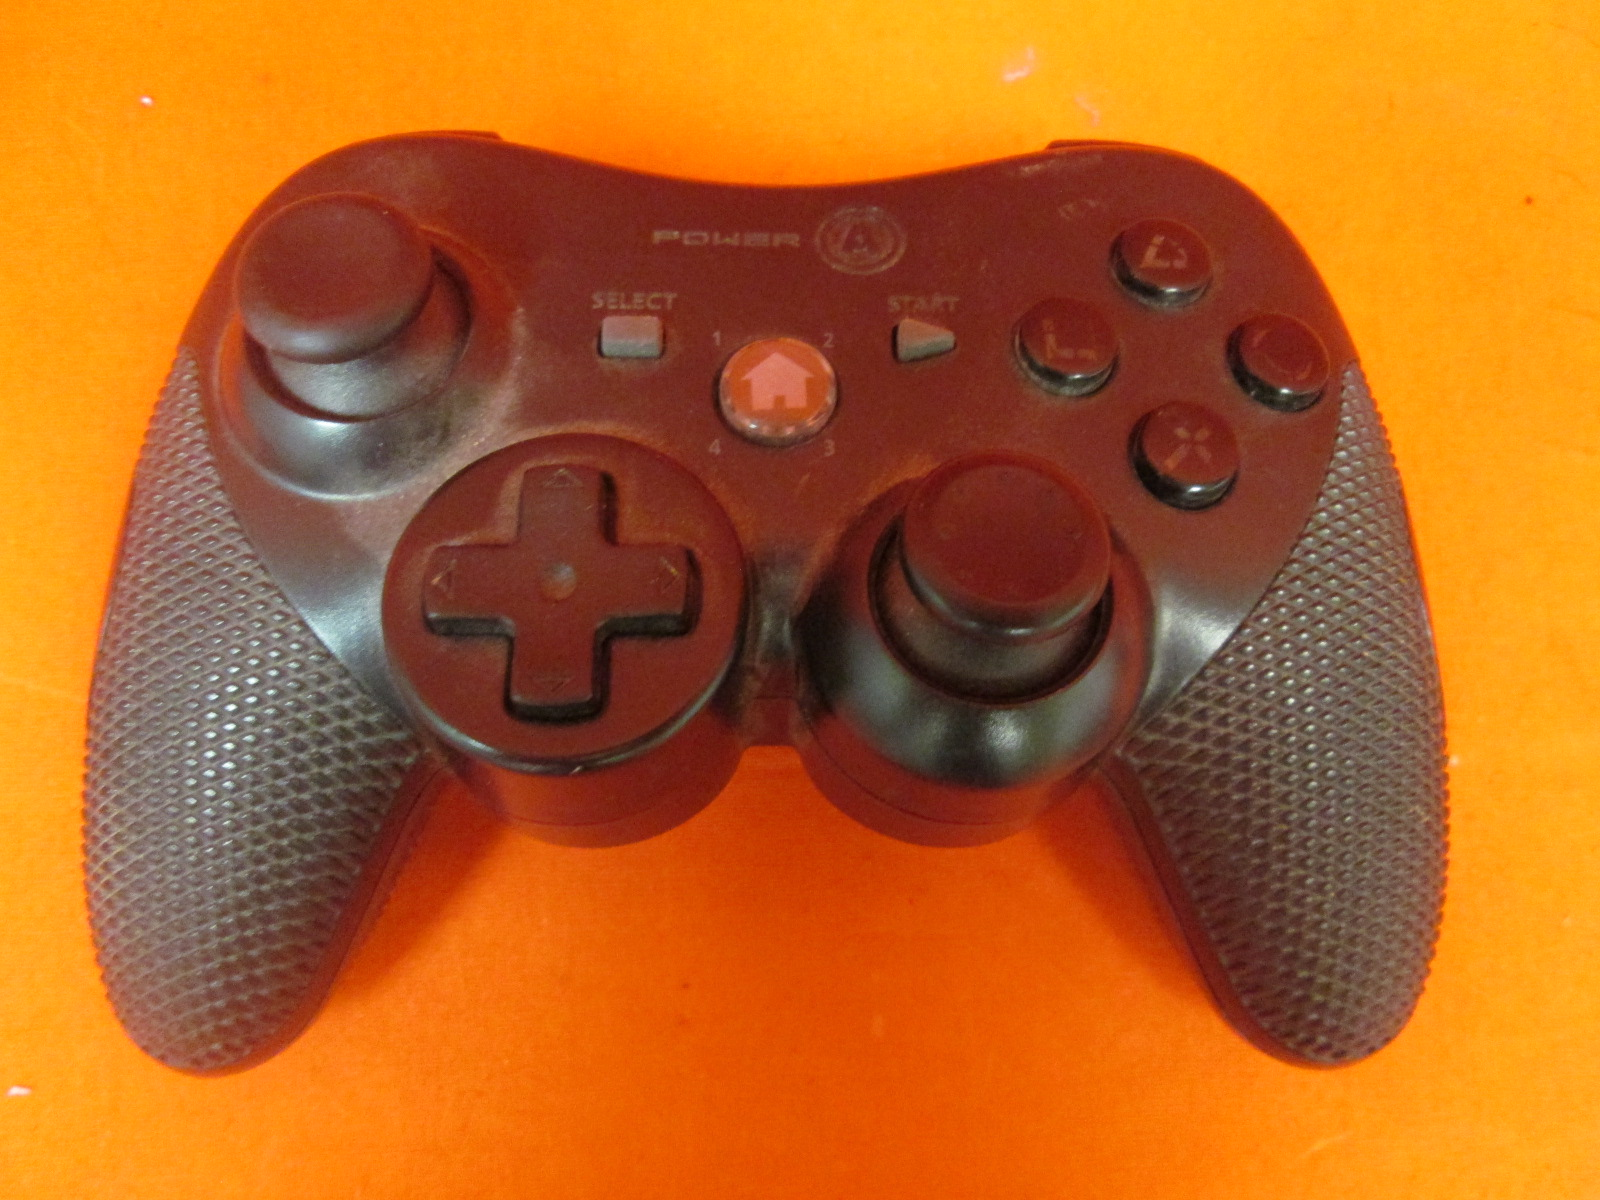 Image 0 of Power-A PS3 Pro Wireless Controller 220038 Gamepad With Dual Analog